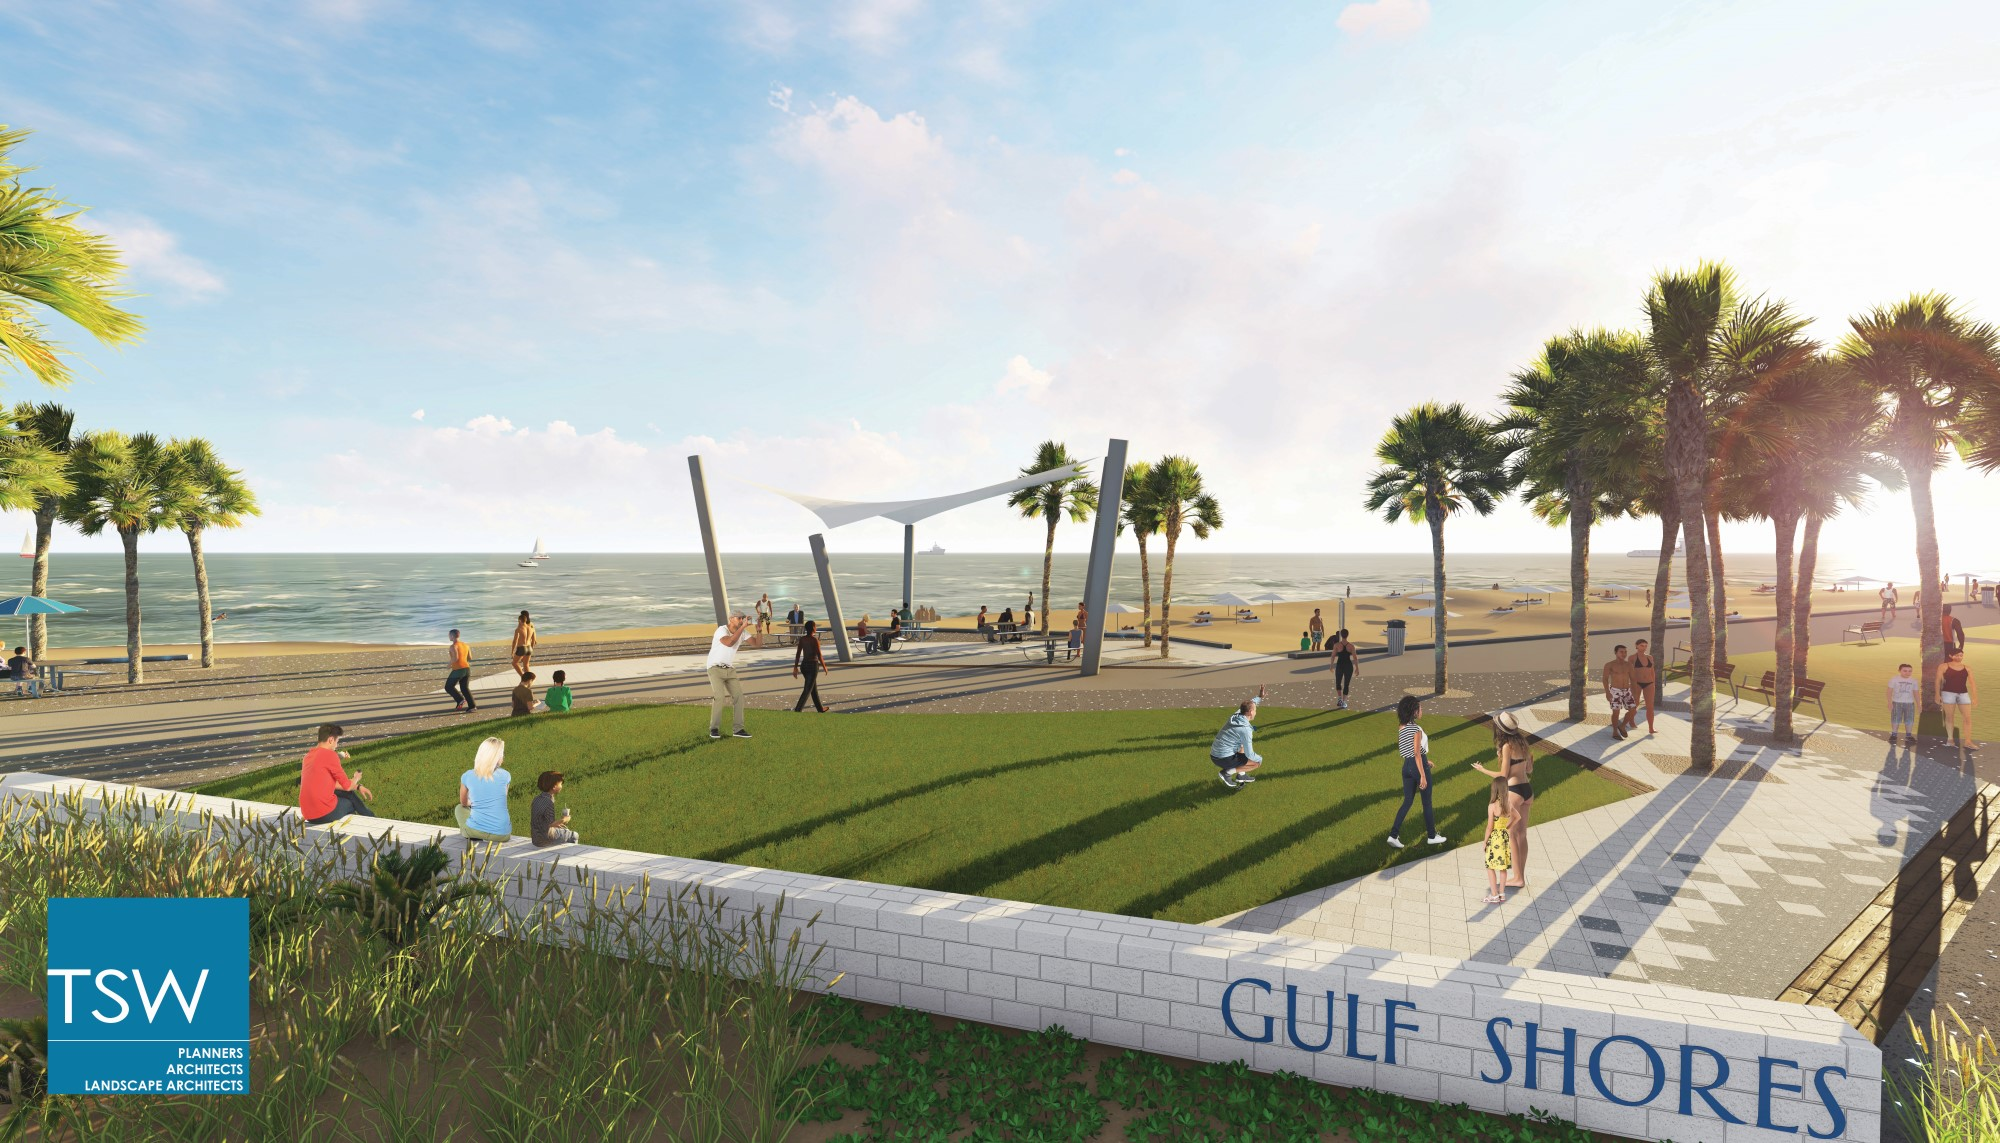 TSW 2017.09.6-Phase-2-Marketing-Images14 Gulf Shores Begins Phase II of Public Beach Transformation In The News Landscape Architecture Planning Sustainable Design  Habitat Environment Public Private Partnership Public Park Urban Design Southeast complete streets resilient coastal waterfront Waterfront Development Revitalization Low Impact Development Gulf Place TSW redevelopment   TSW